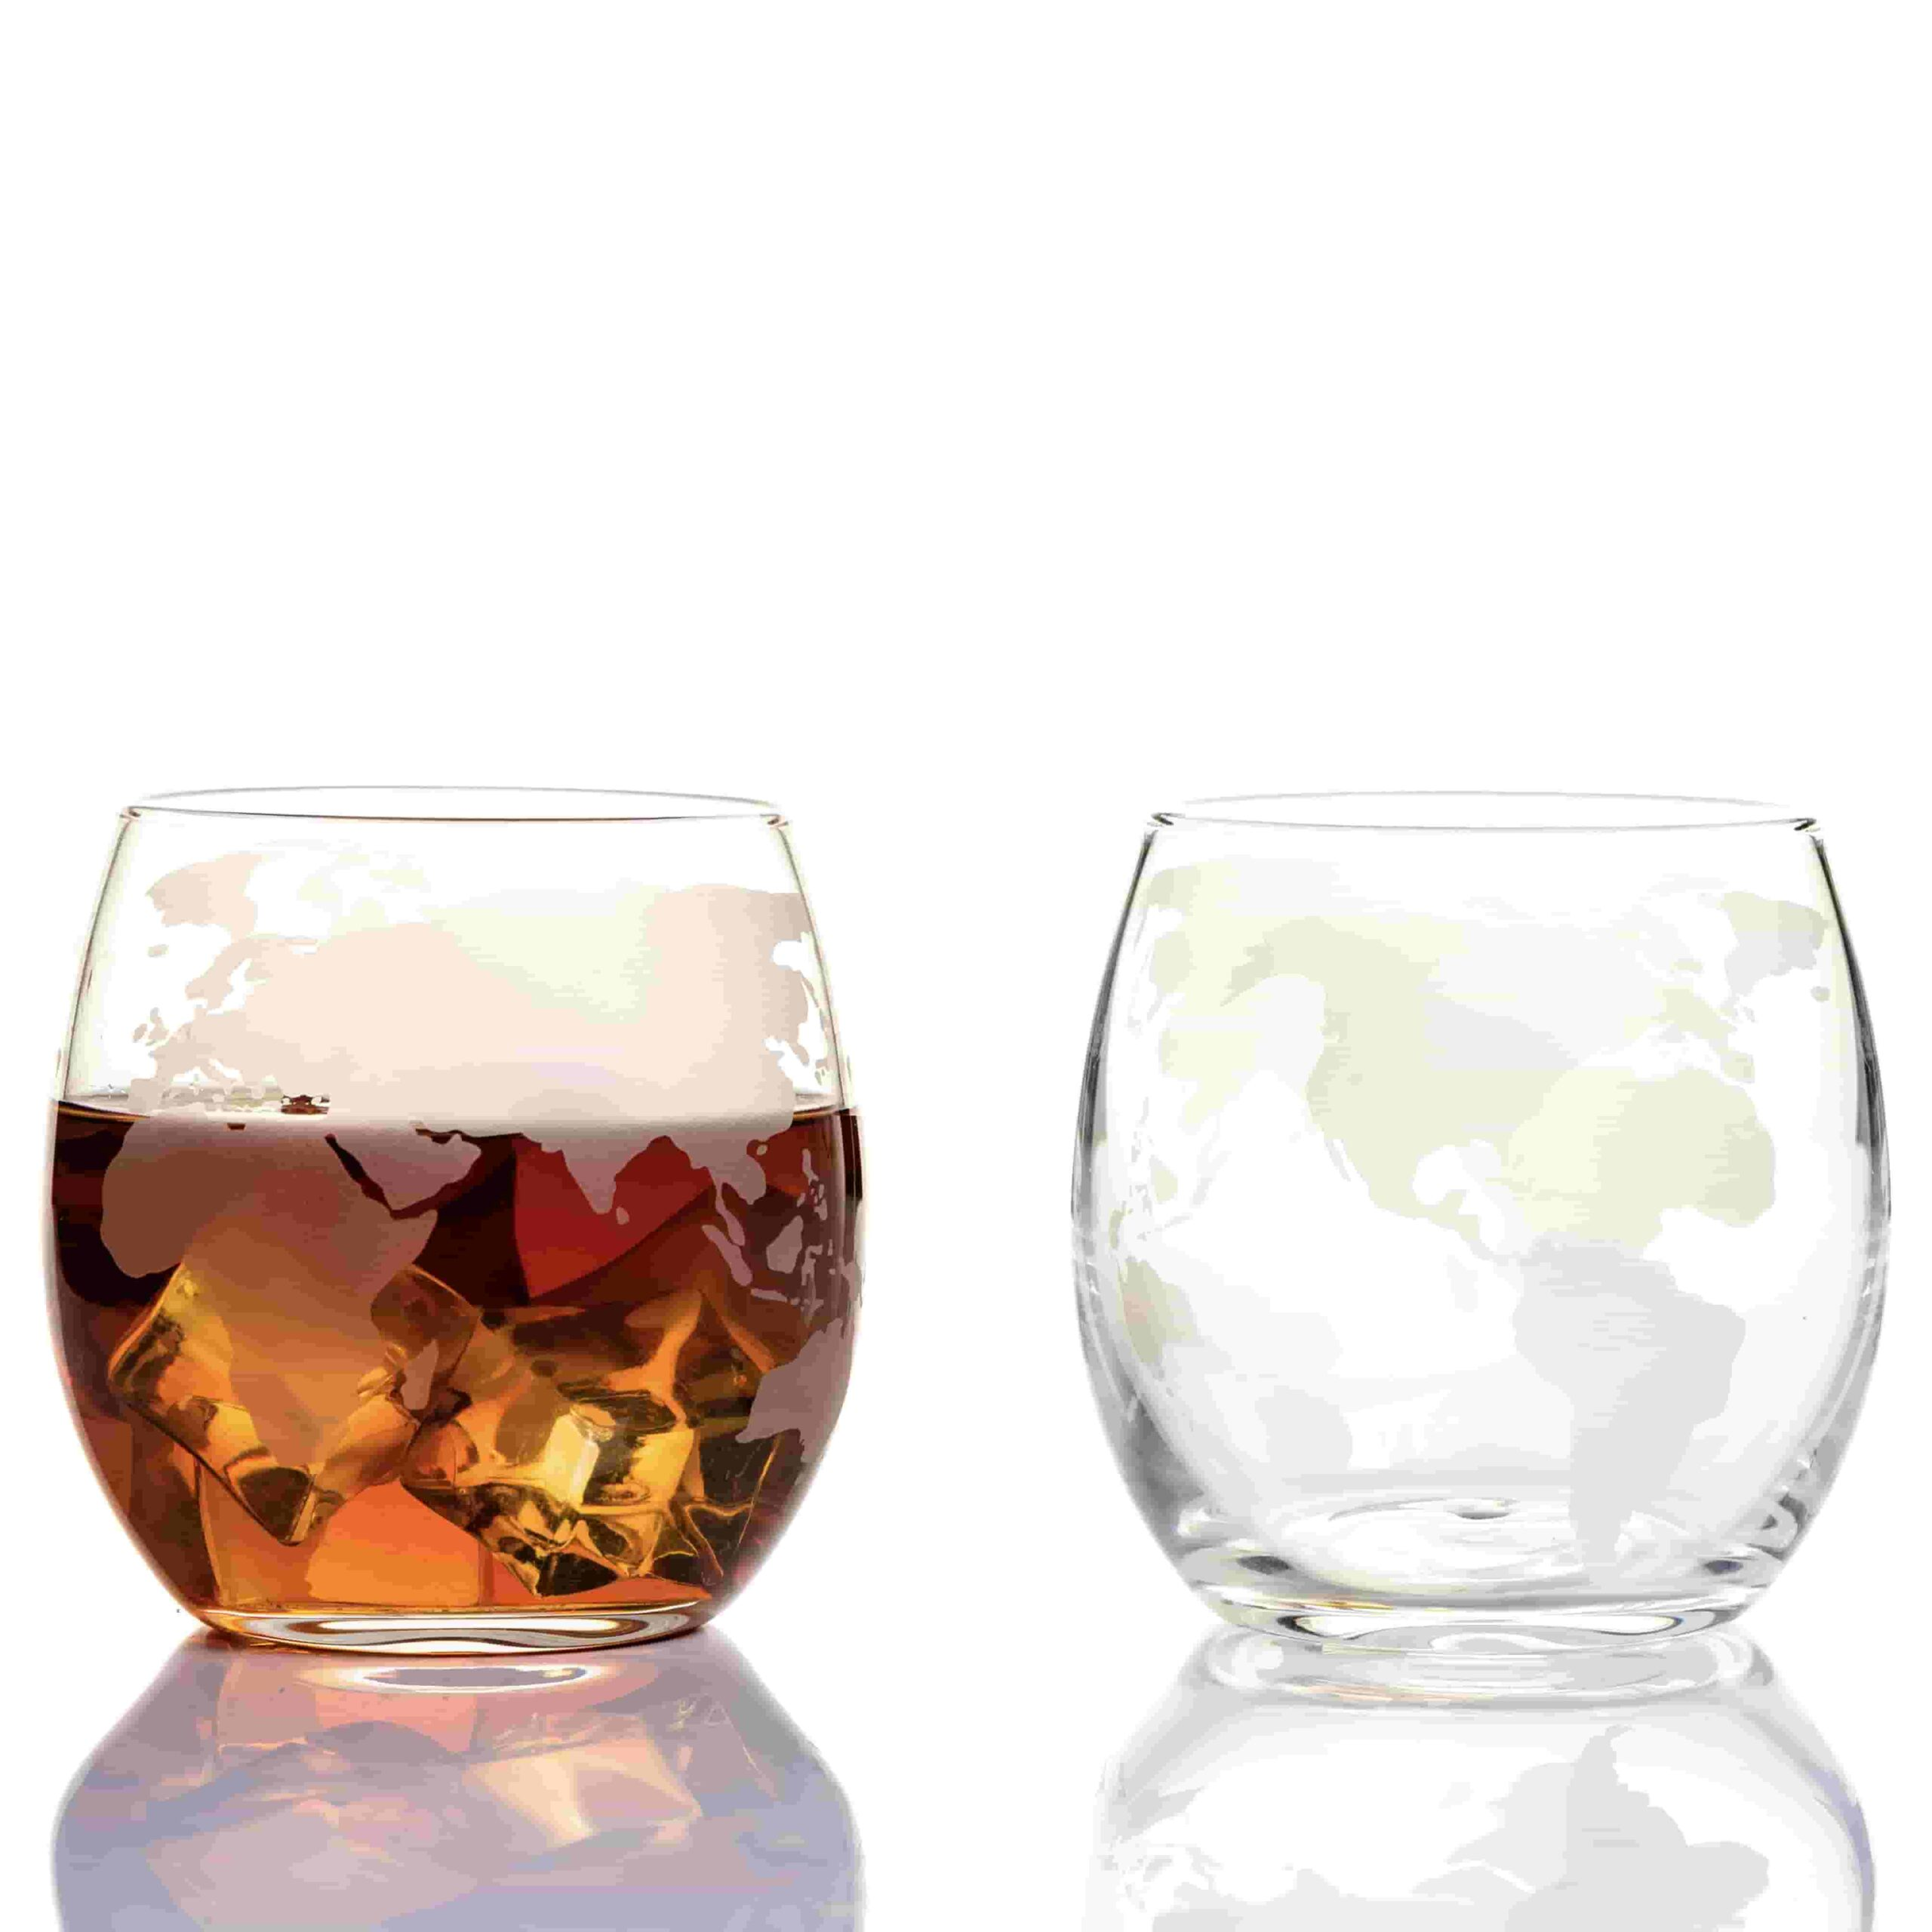 Etched Globe Spinning And Rocking World Whiskey Glasses 10oz 300ml Set Of 2 Kemstood